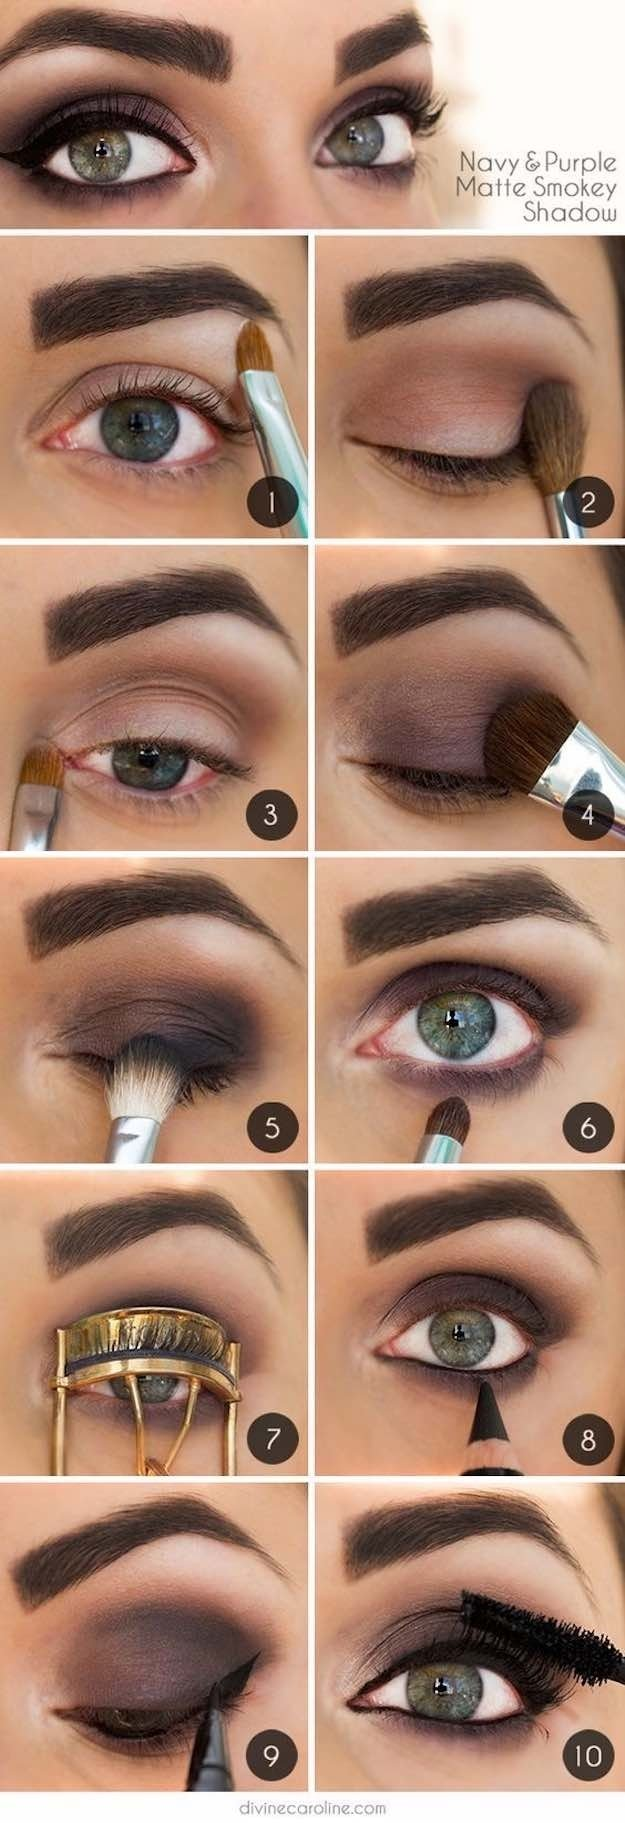 10 Nice Eyeshadow Ideas For Green Eyes 50 perfect makeup tutorials for green eyes the goddess 2